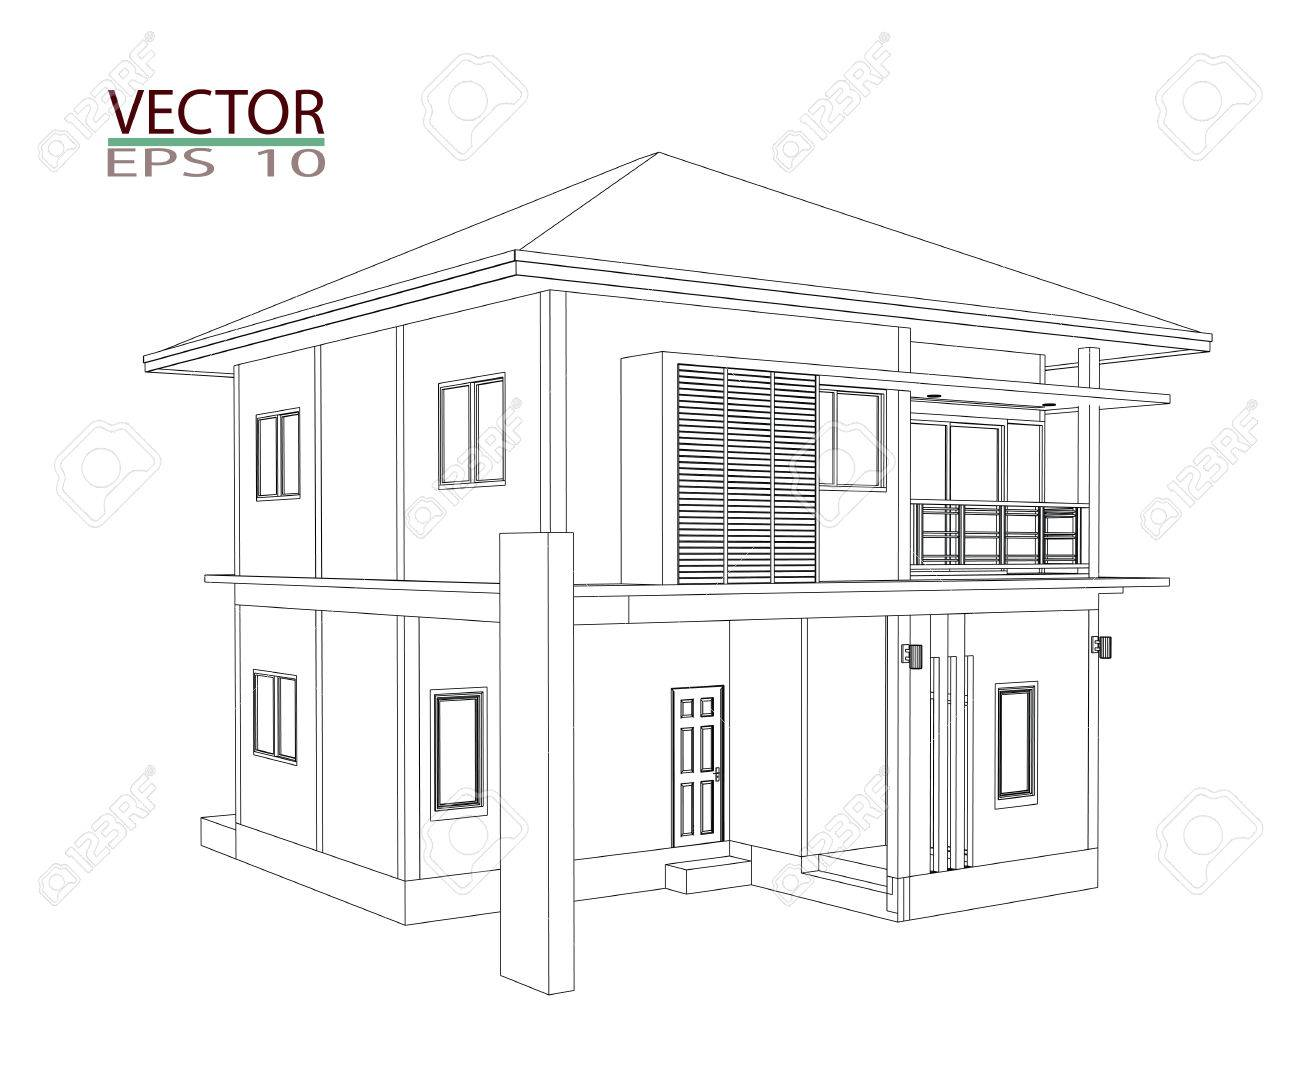 3d Home Drawing Design Stock Photo Picture And Royalty Free Image